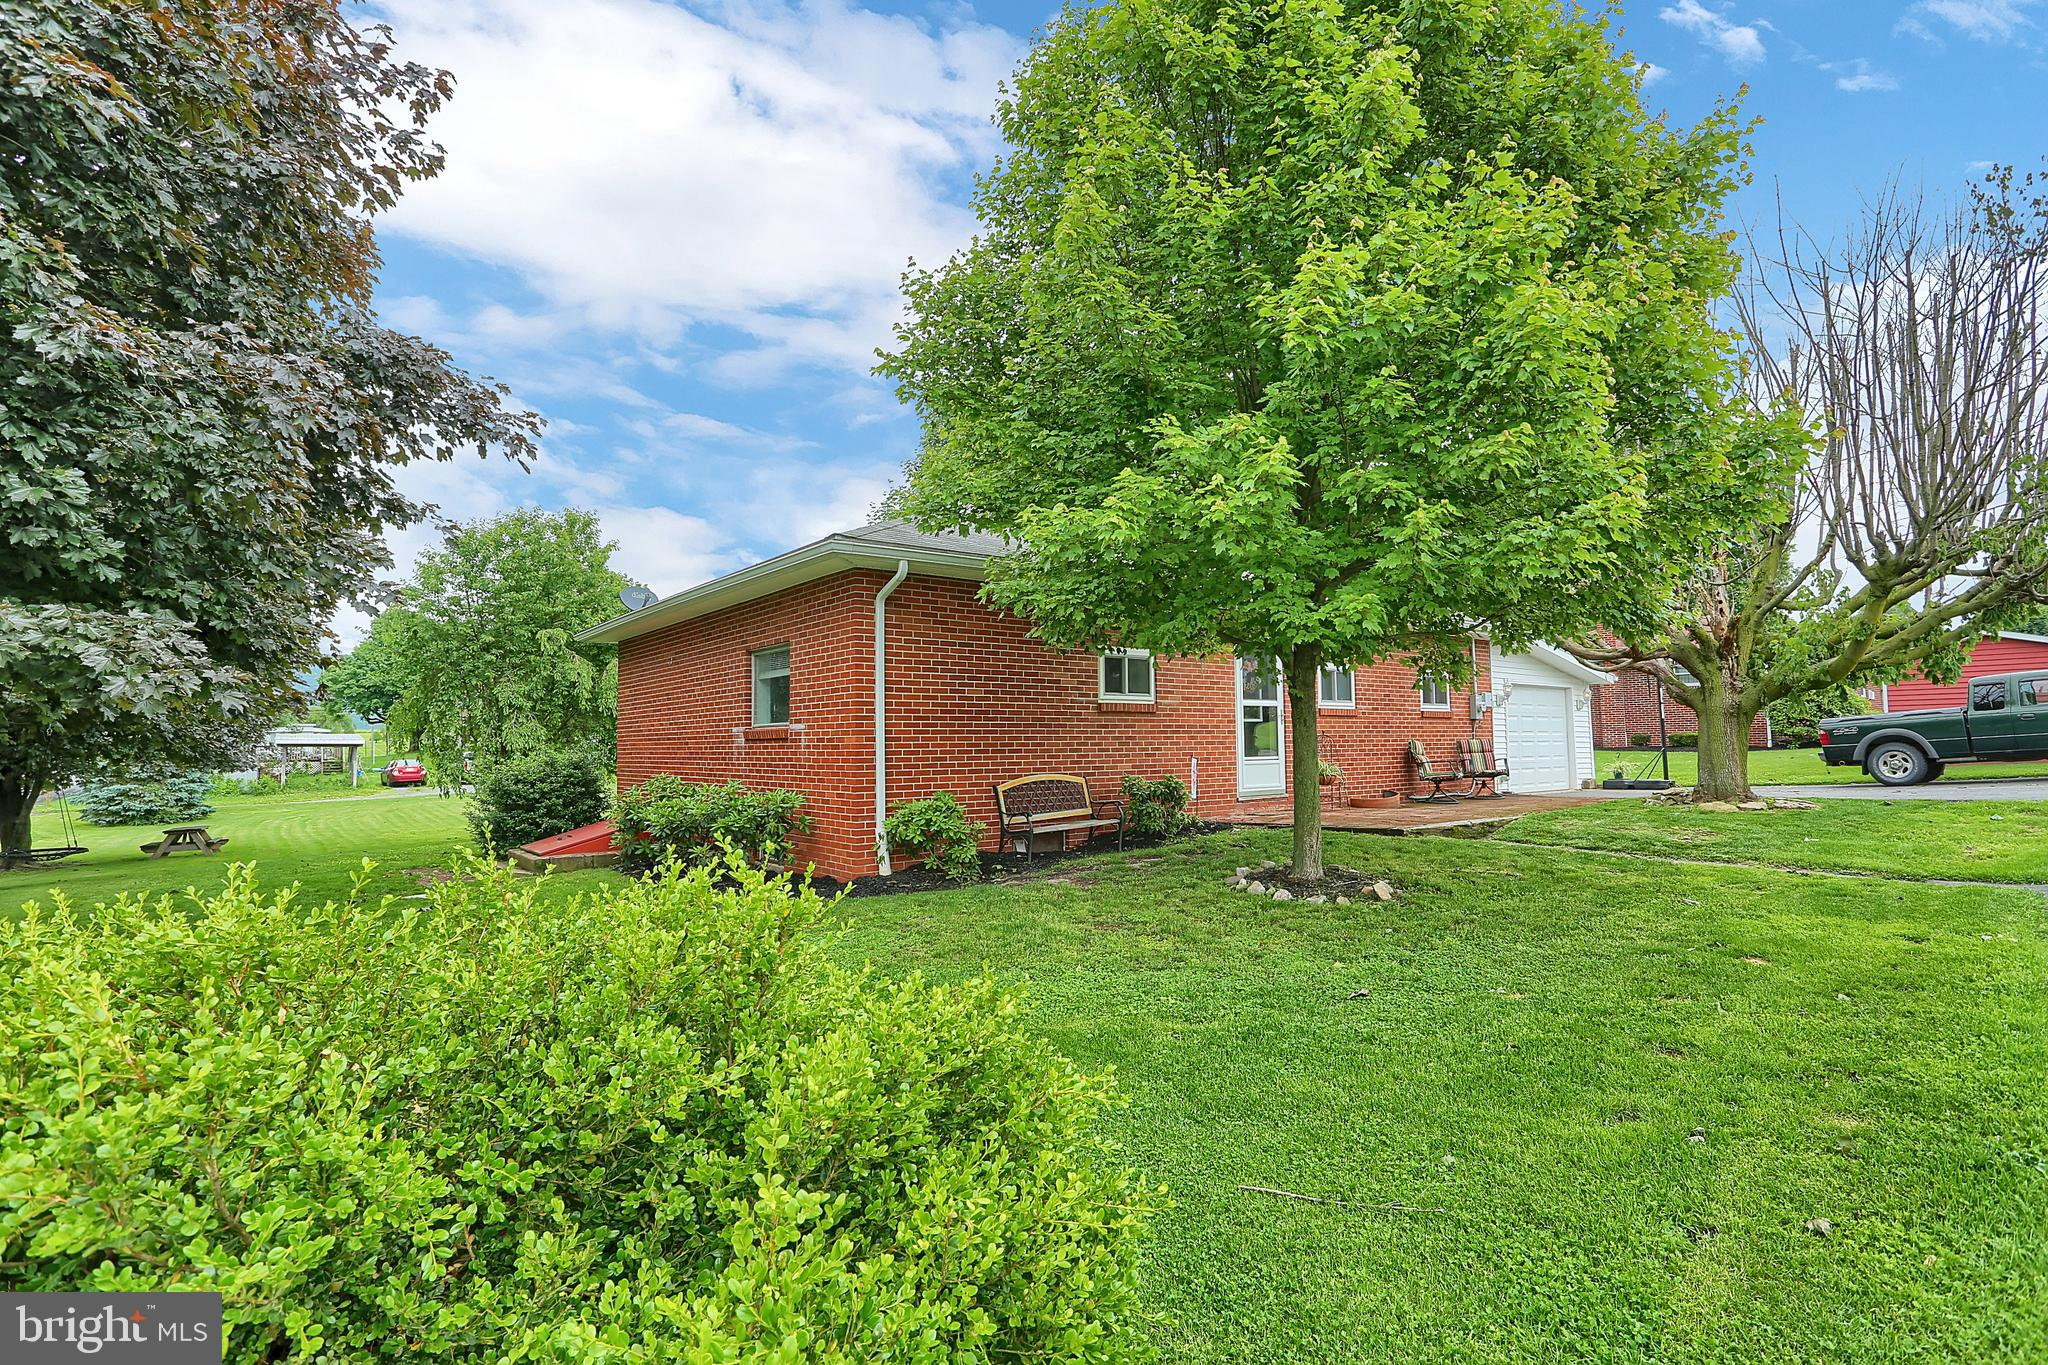 214 WILLOW STREET, VALLEY VIEW, PA 17983